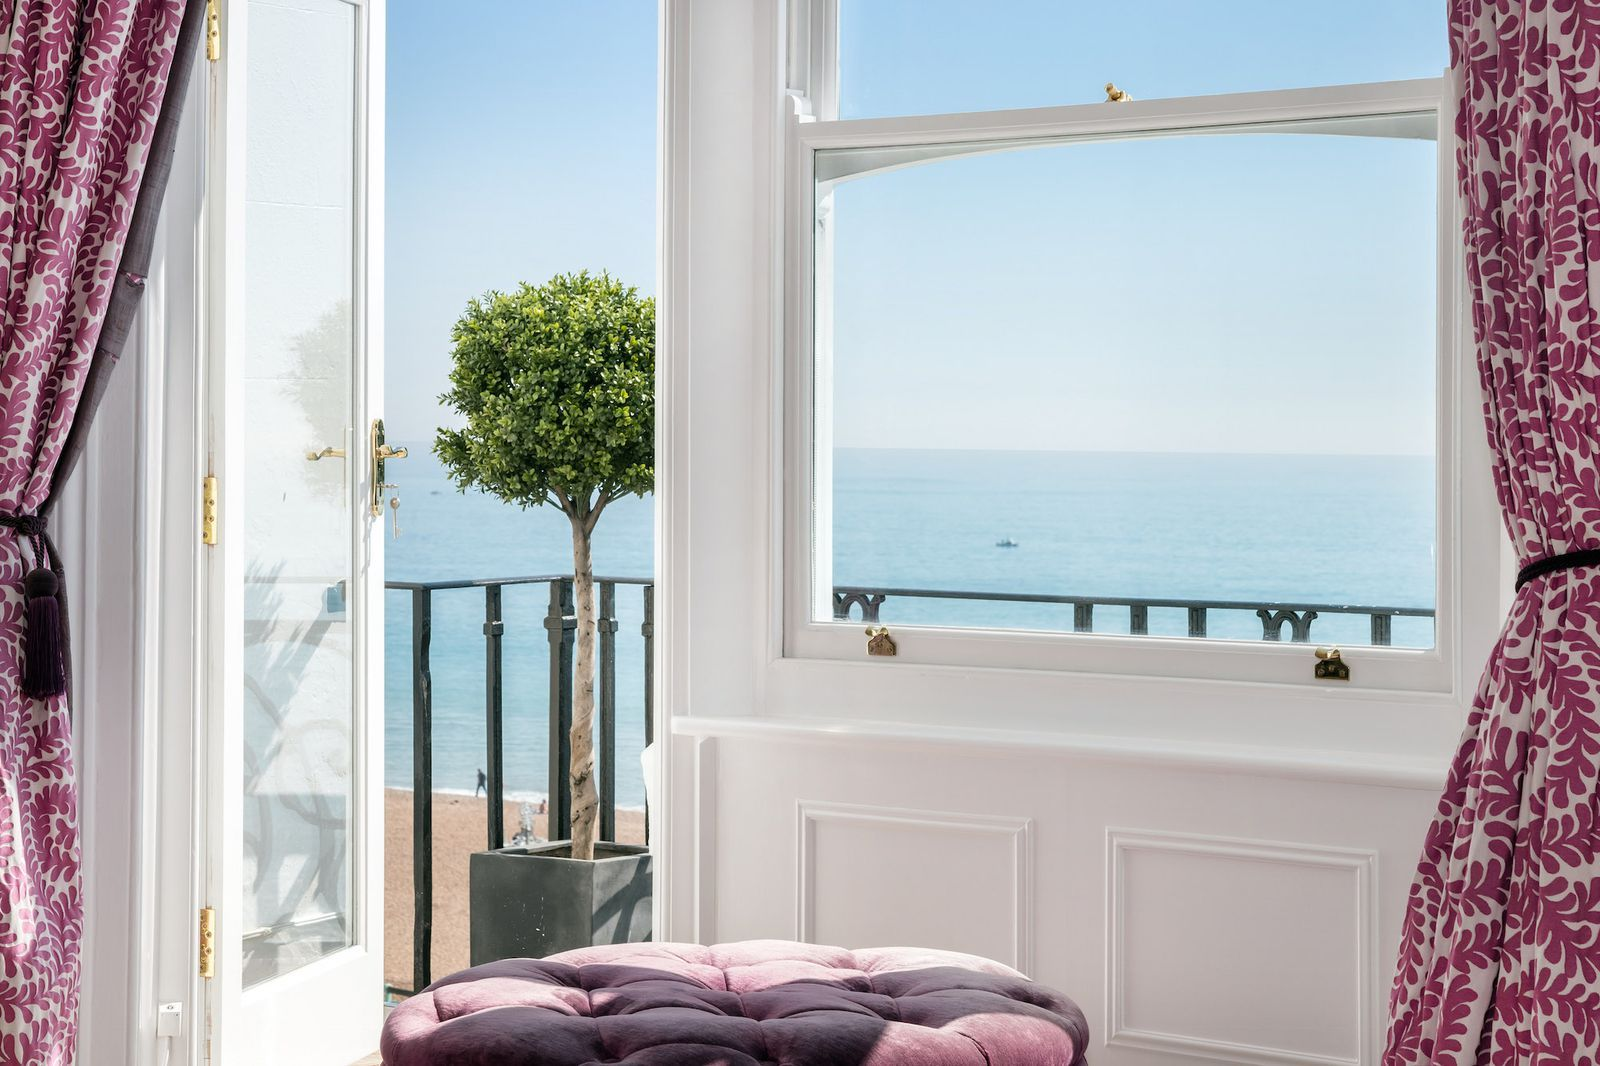 This Magnificent 10 Bedroom House In Brighton Is Now On The Market